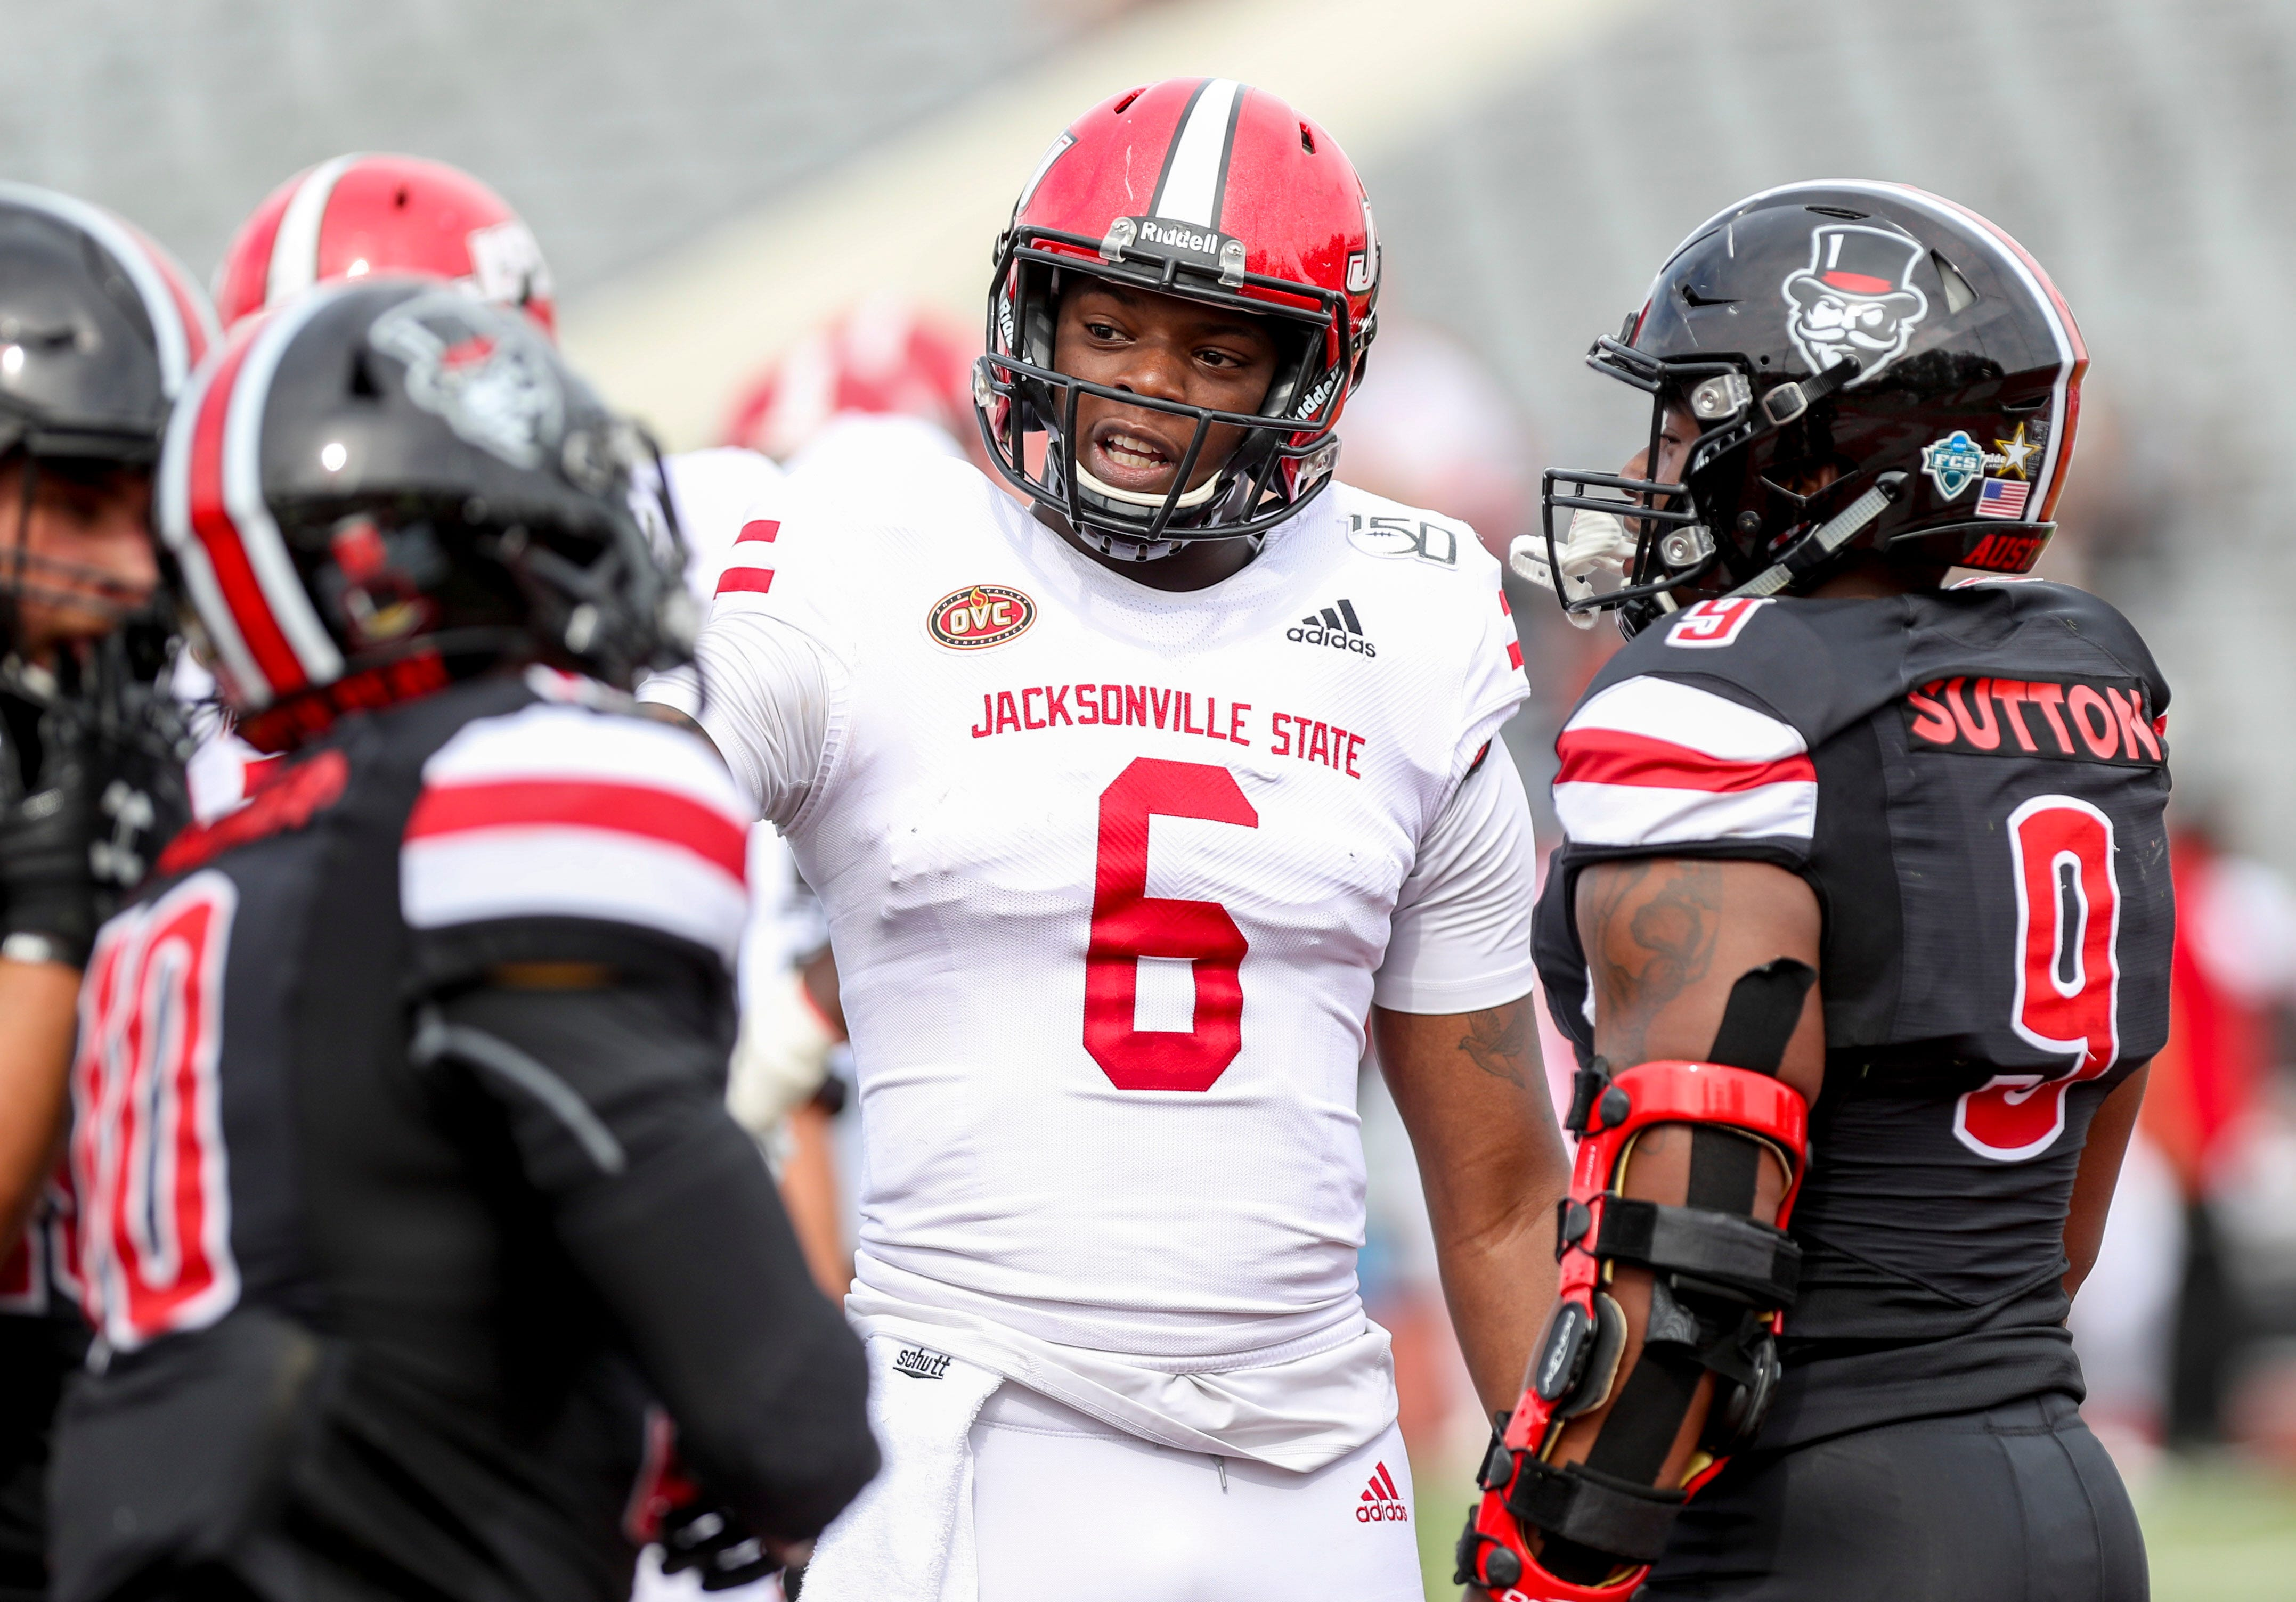 Analysis From The Opposition Jacksonville State